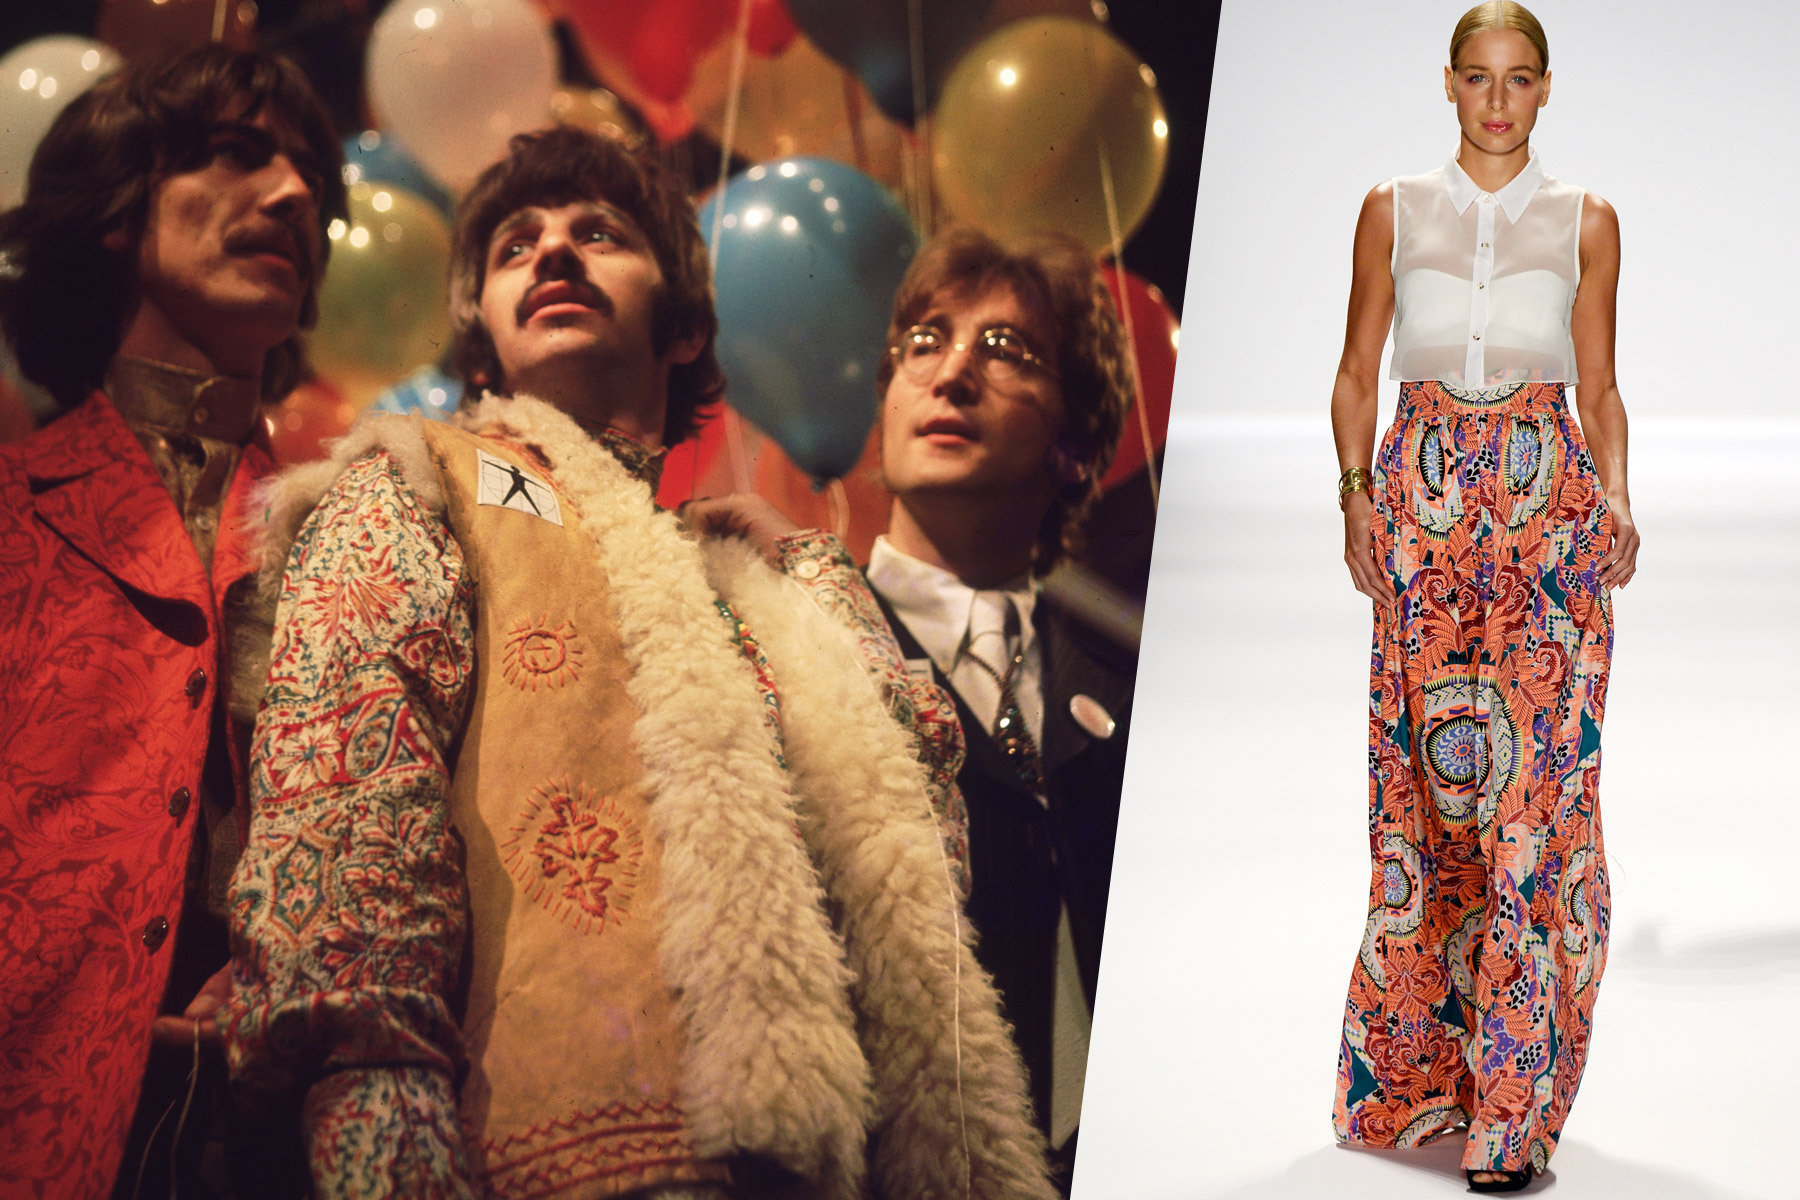 The Beatles ready for the 1968 world tour with a paisley clad model from Mara Hoffman